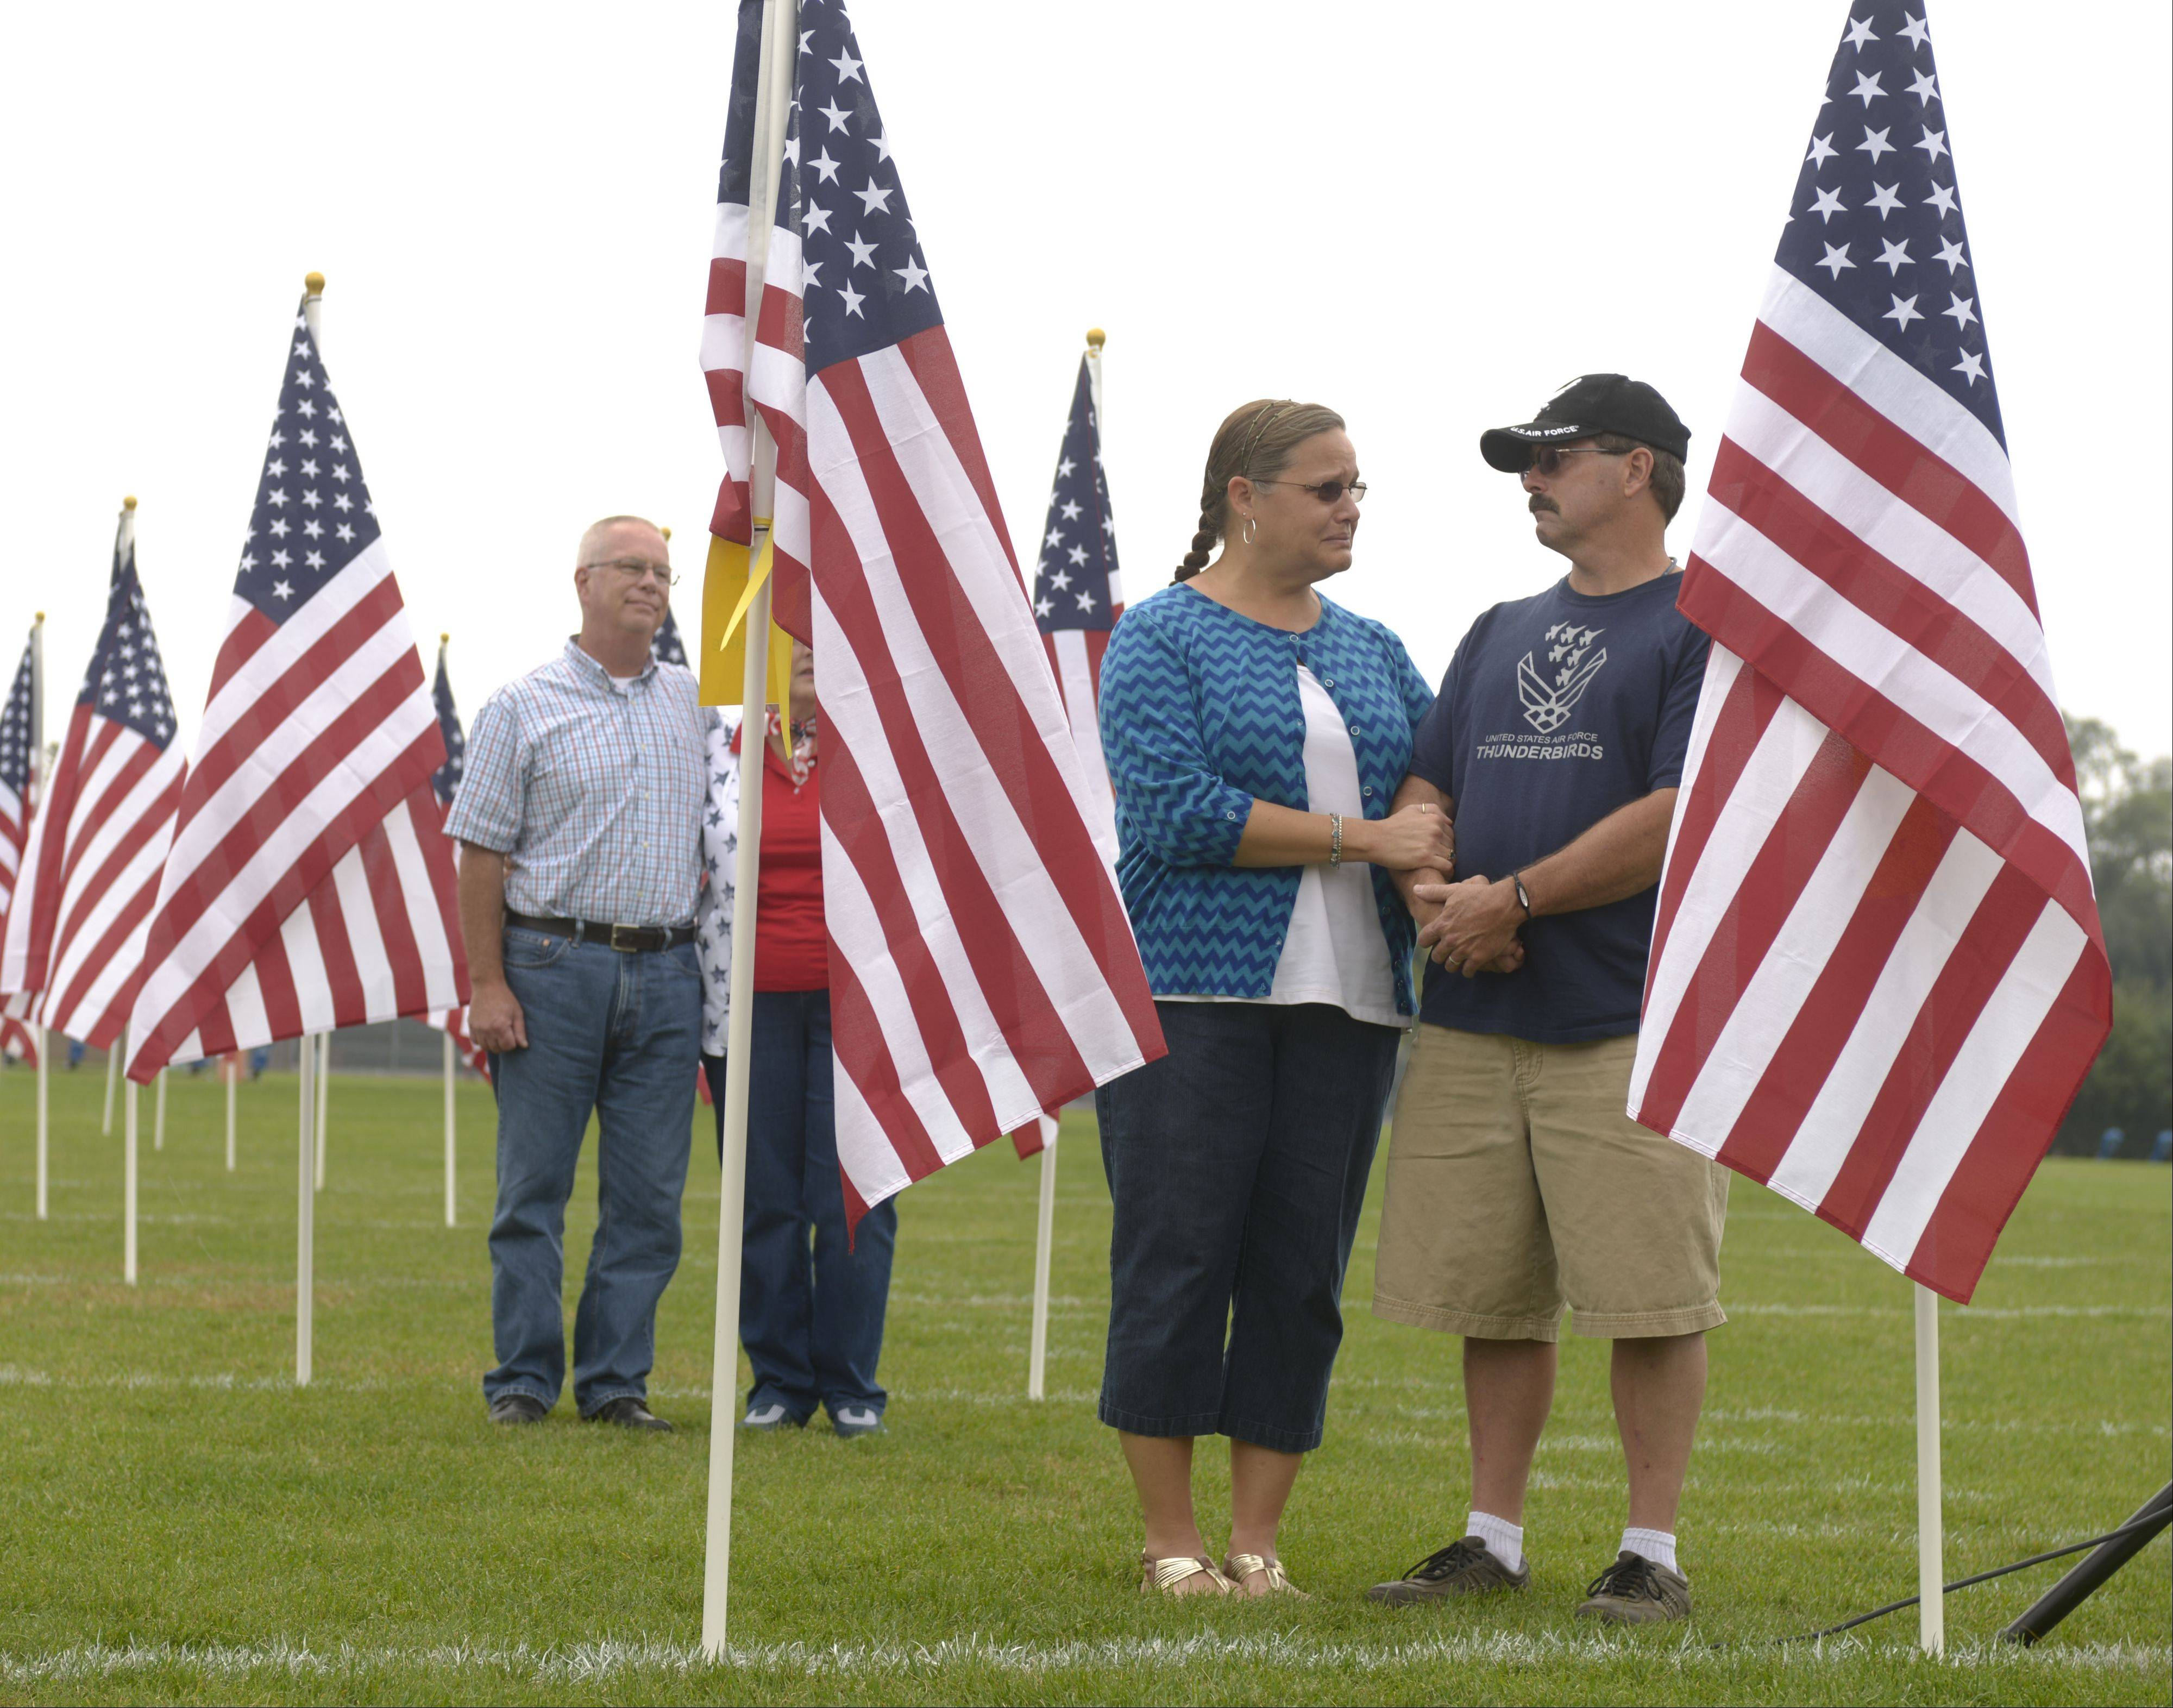 Aurora's Healing Field of Honor officially will open at 1 p.m. Sunday and will feature 2,013 flags. Christine and Bruce Darby stand with the two flags for their children, Nathanial and Allison, who are both serving in the U.S. Air Force, during a ceremony last month to preview the event.